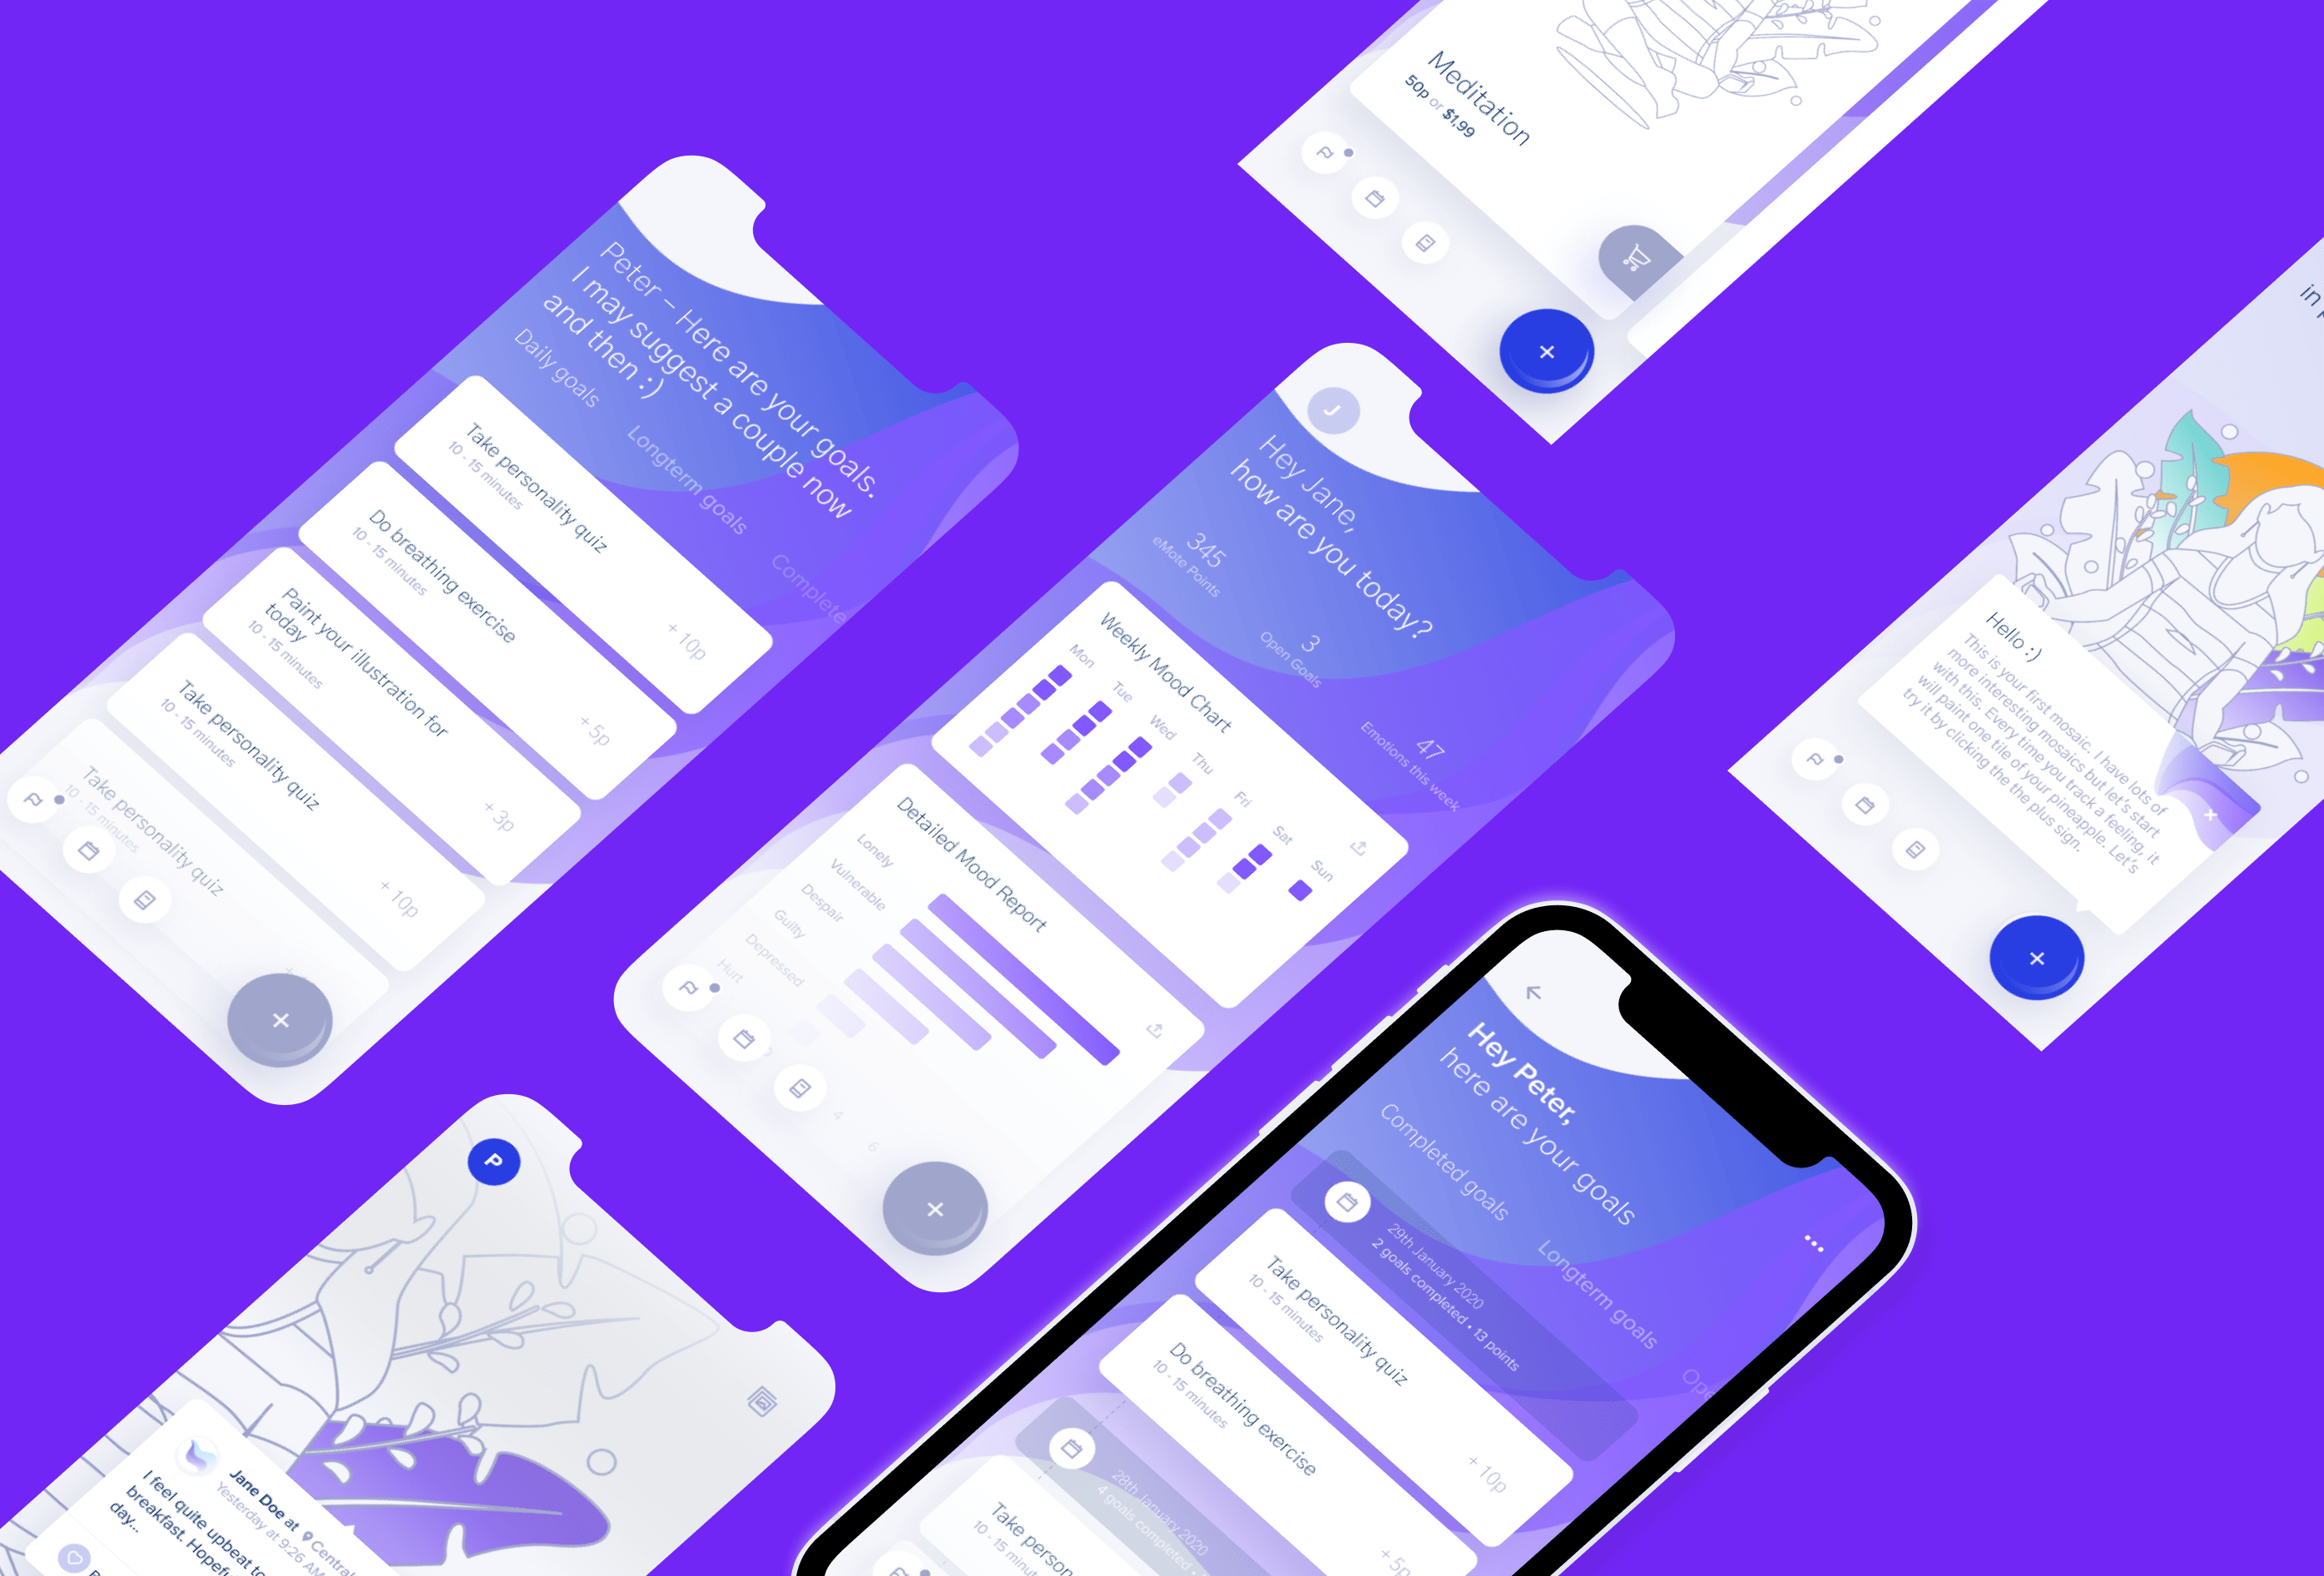 iPhone X models lined up in masonry style with marbl mood tracking app, mood report screens on display, purple colour scheme and background